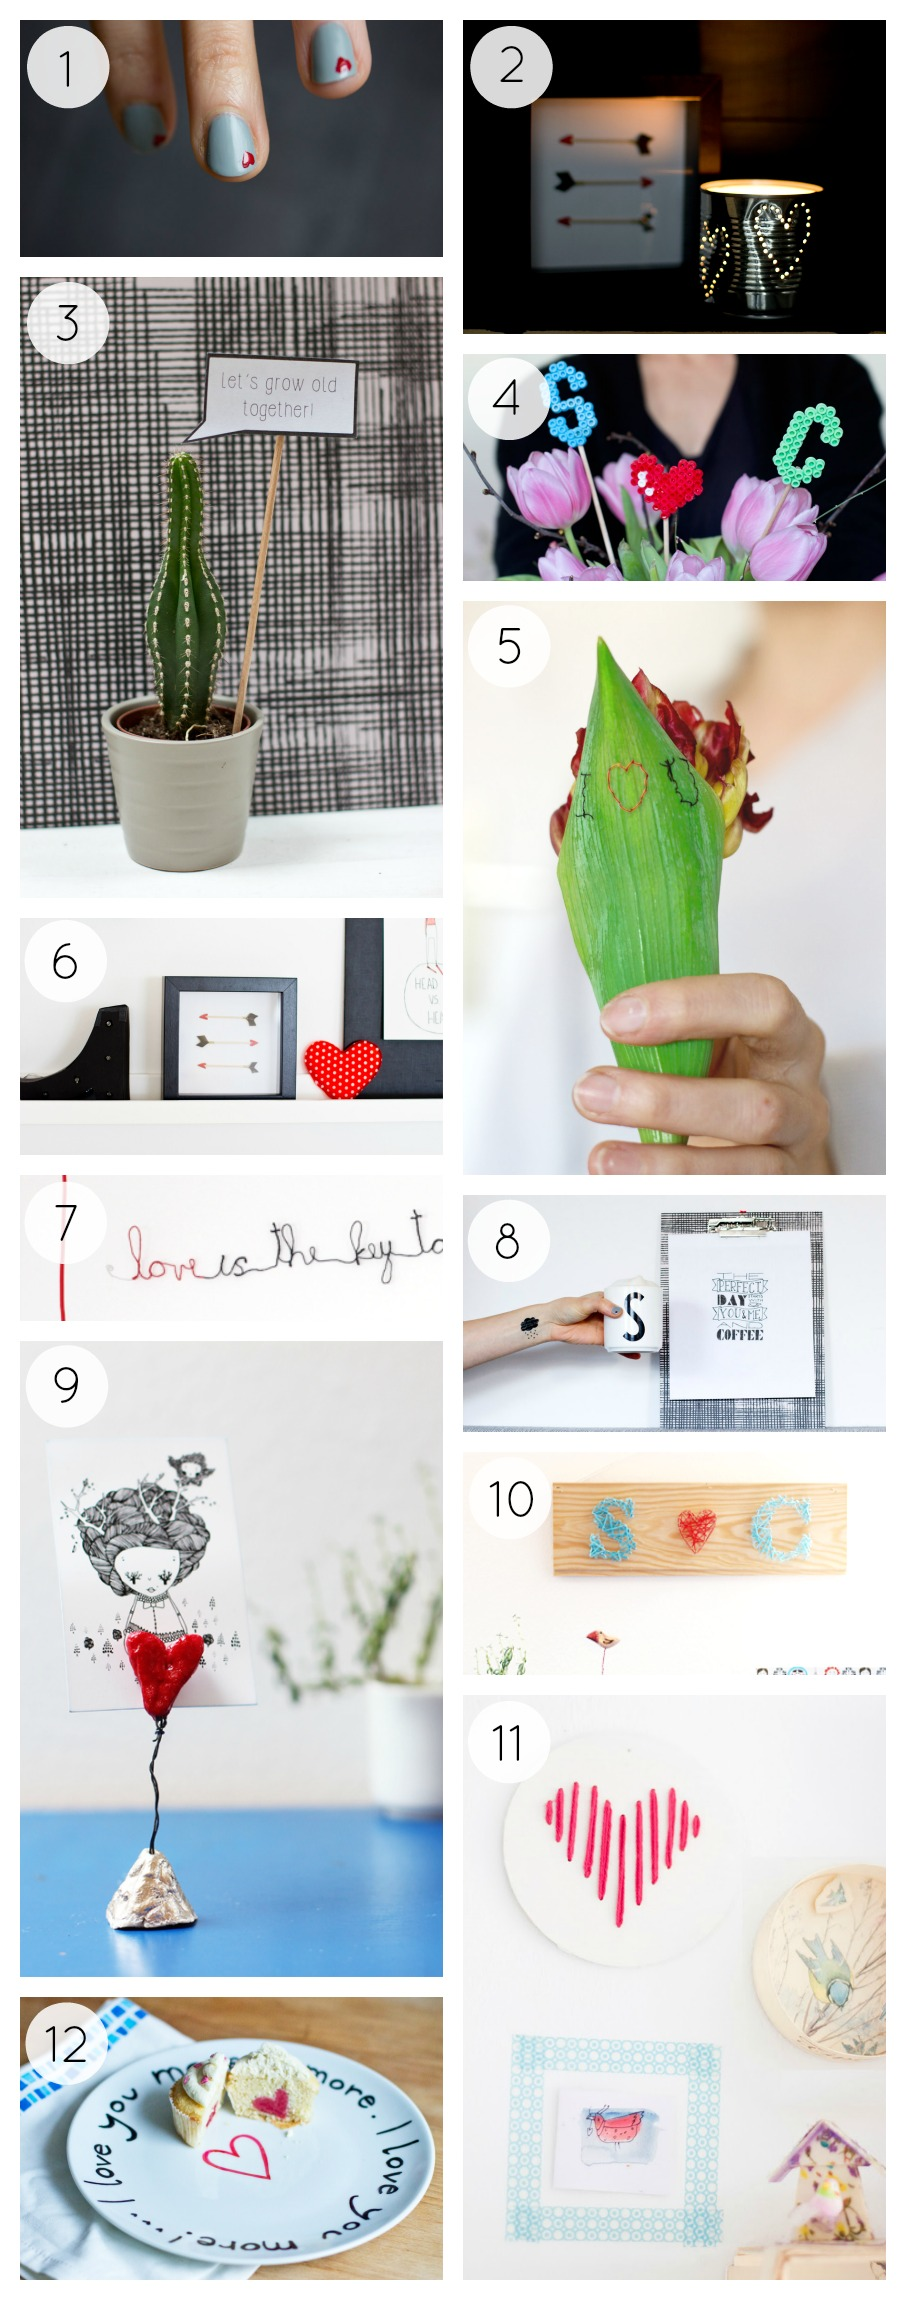 12 DIYs to try for a crafty Valentine's Day